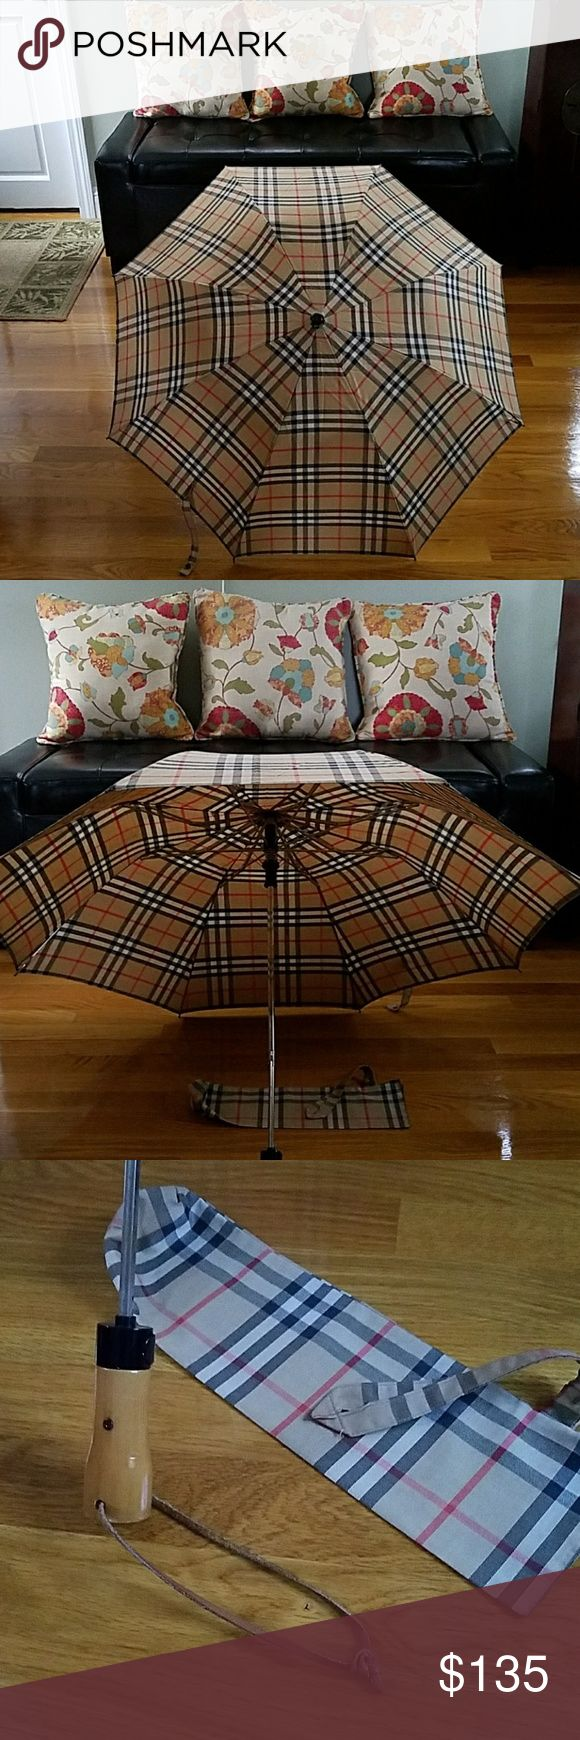 "Burberry Signature Classic Nova Check Umbrella This is an Authentic and Vintage Burberry folding umbrella with Cover. Good condition with very minor signs of use. It opens to 37"" across and closed folded position is 15"". Burberry Accessories Umbrellas"